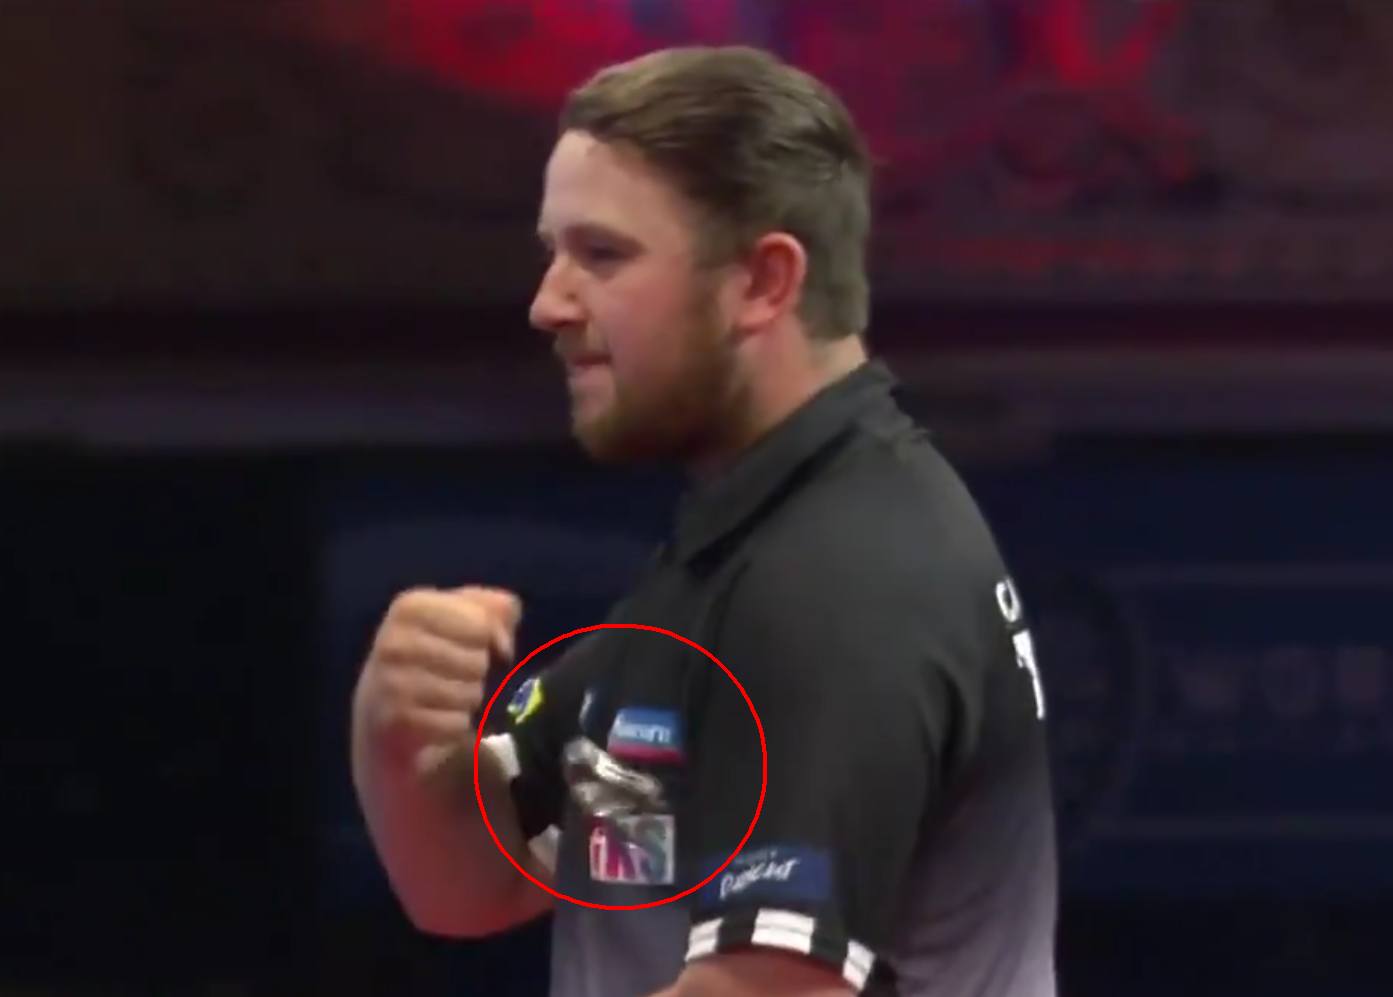 VIDEO: Callan Rydz Lost His Watch While Cheering On Stage 😅